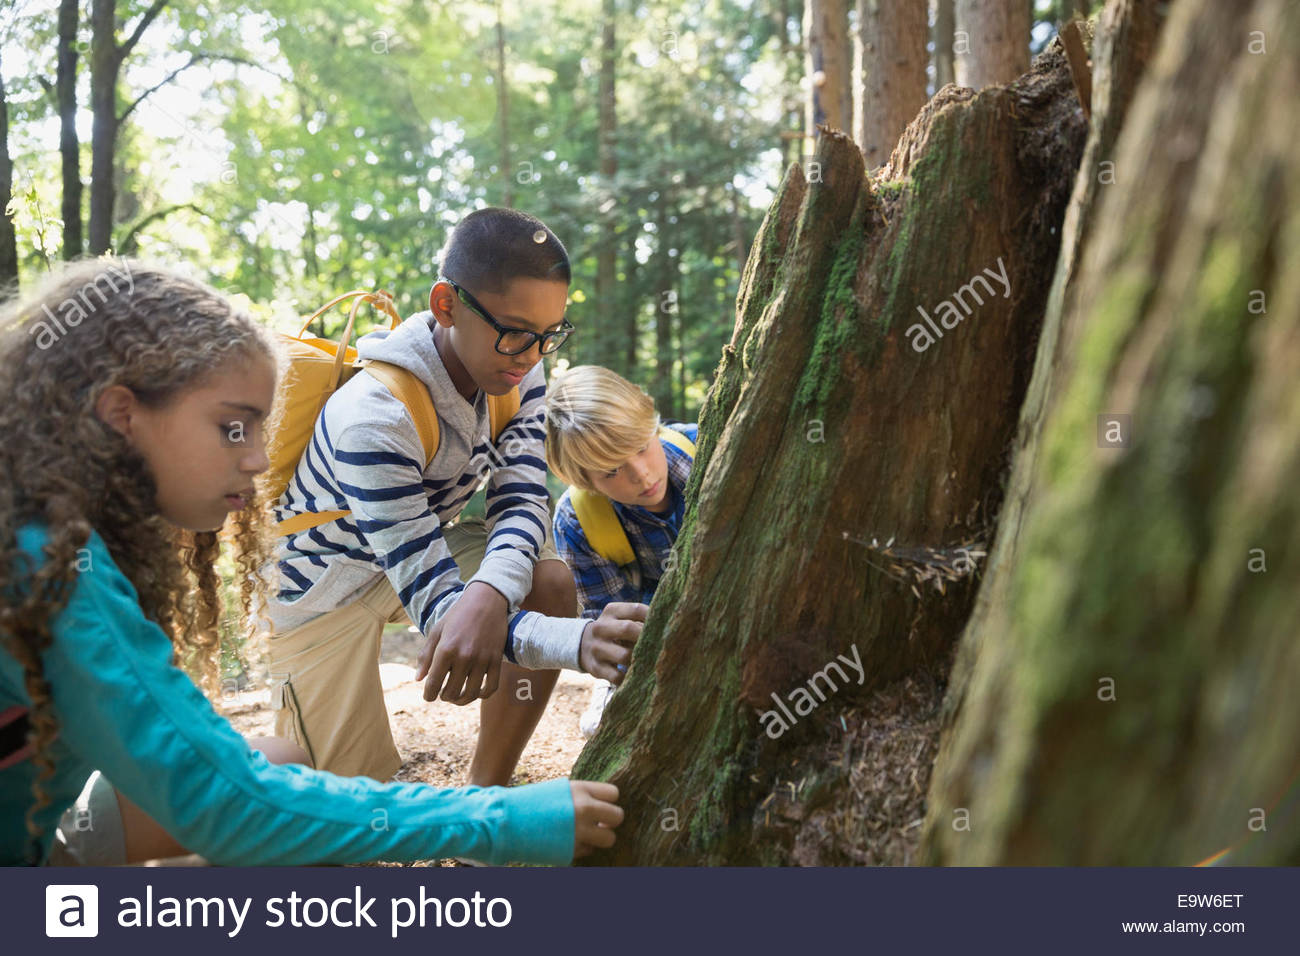 Boys and girl examining tree trunk in woods - Stock Image